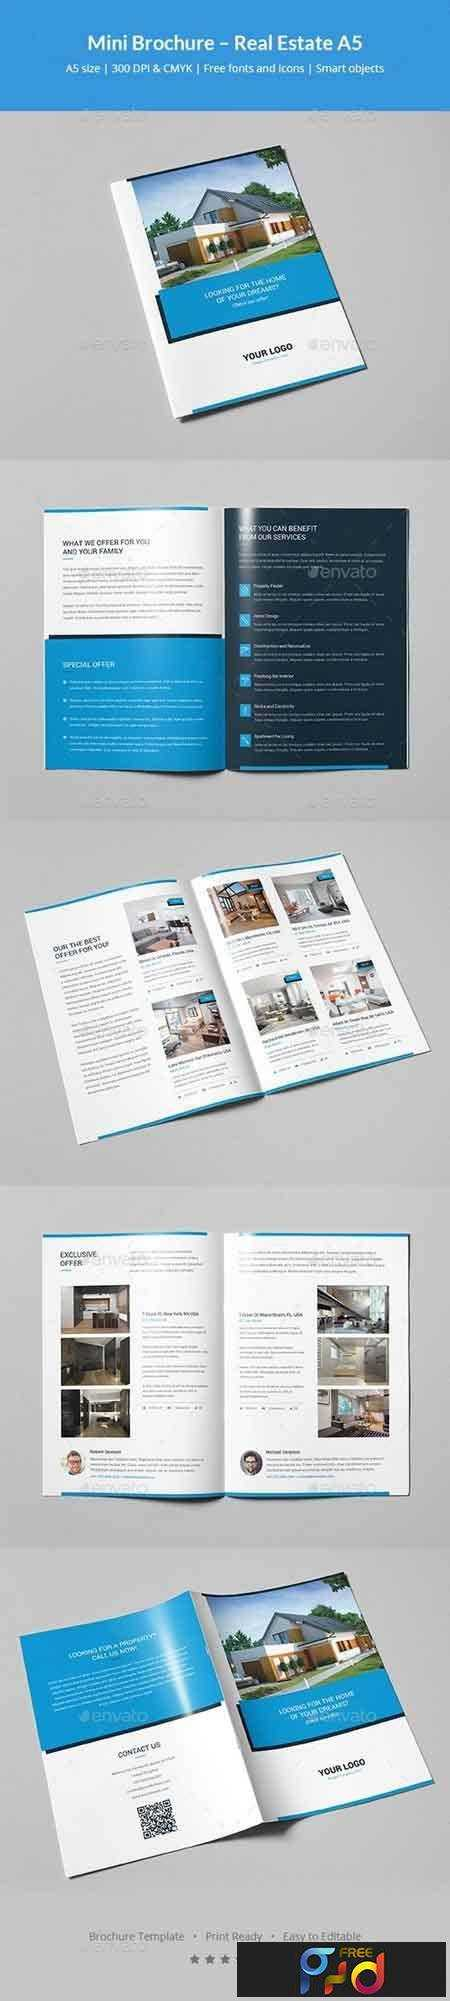 1708287 mini brochure real estate a5 21090680 freepsdvn for Mini brochure template